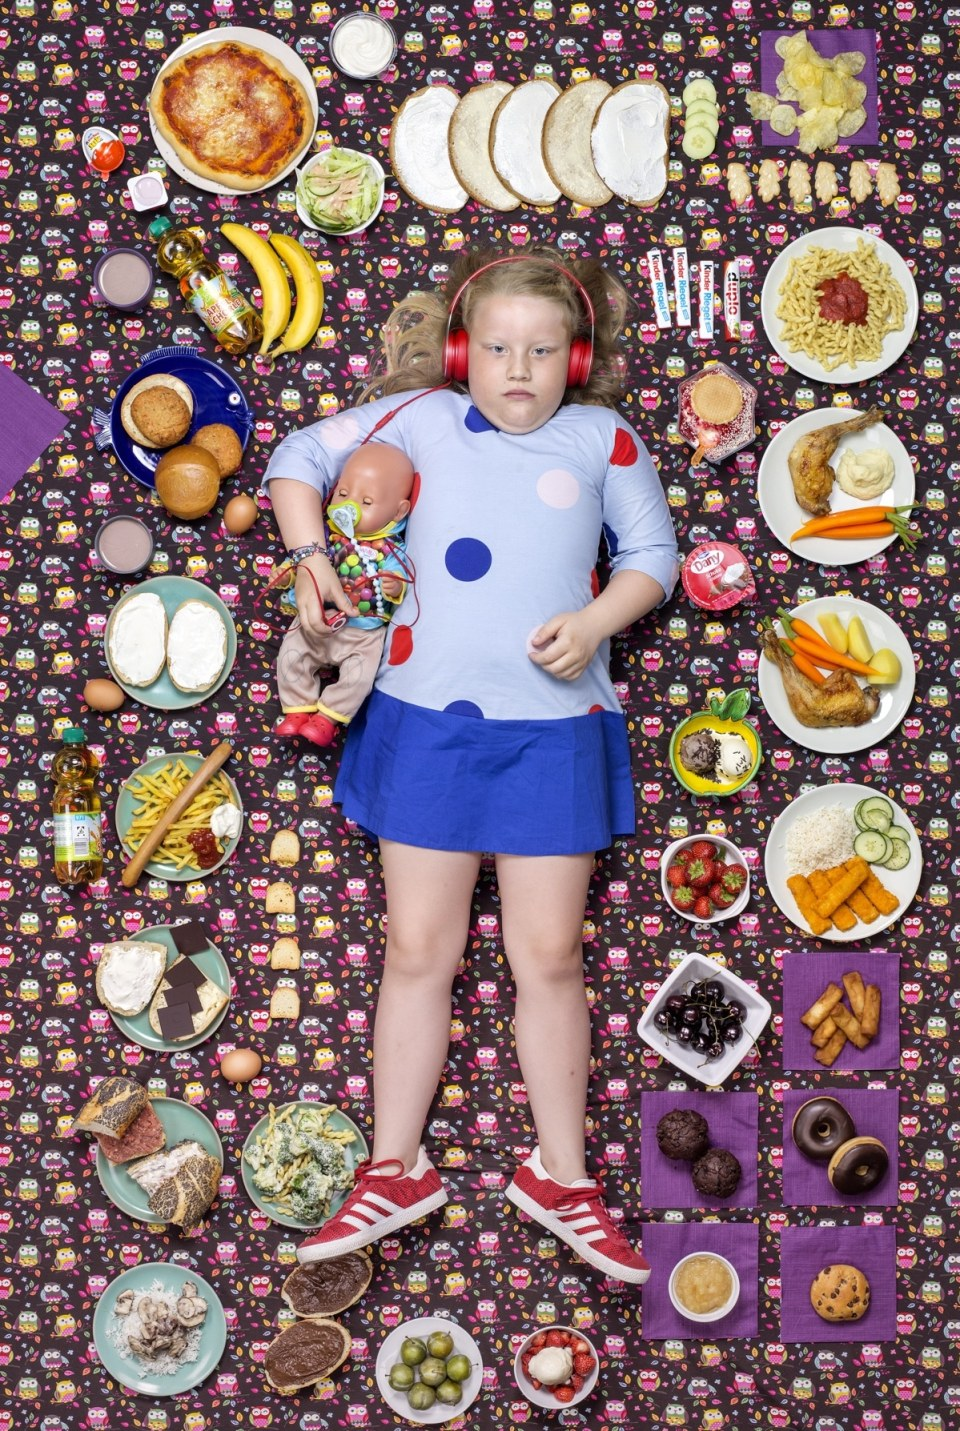 Eating Habits of Kids Around the World